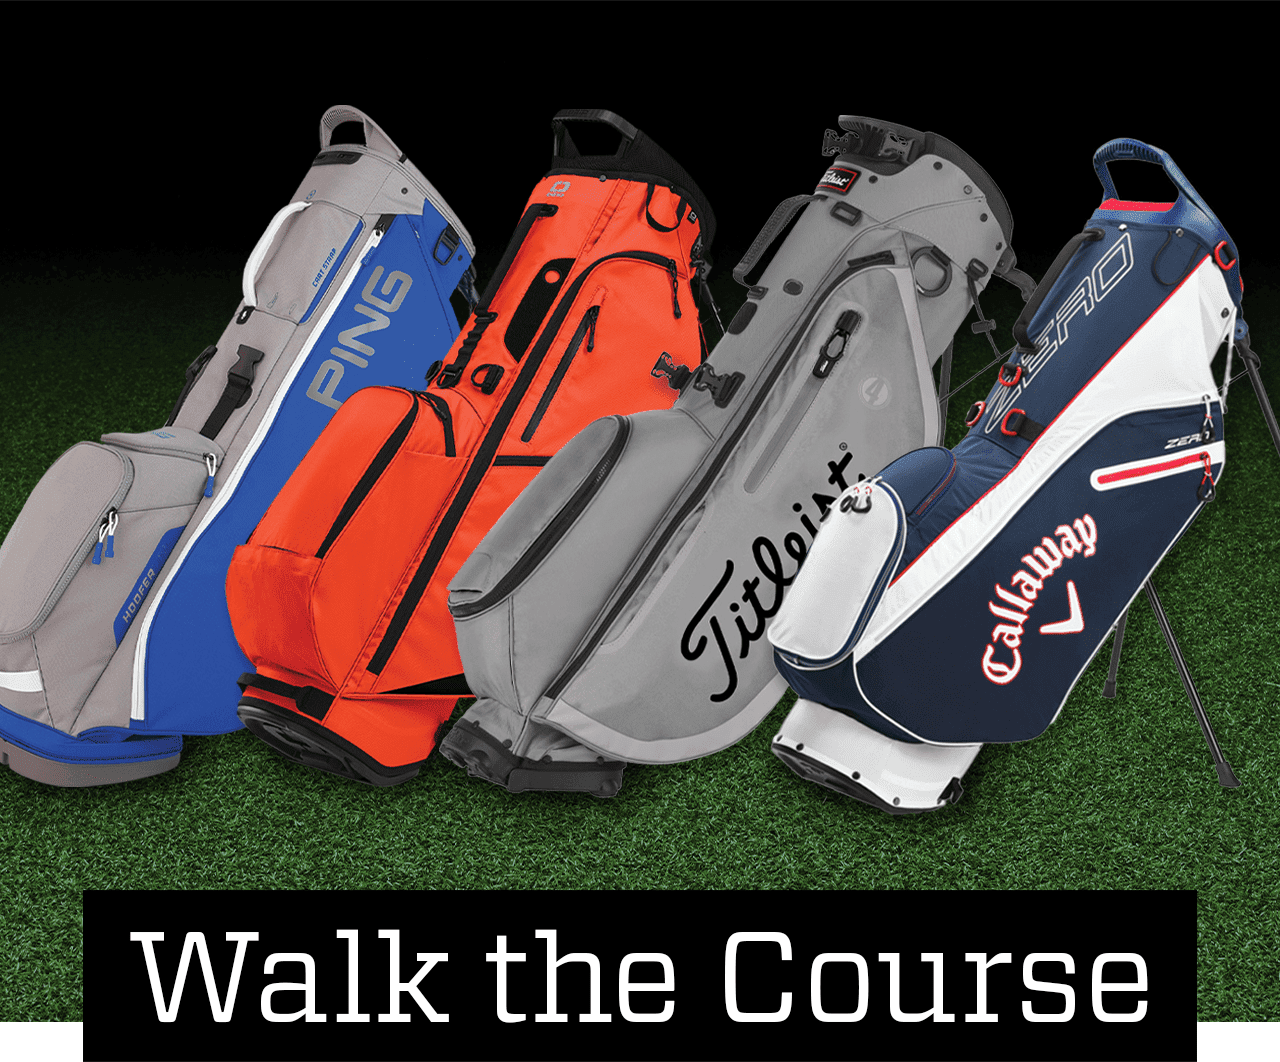 Walk the Course